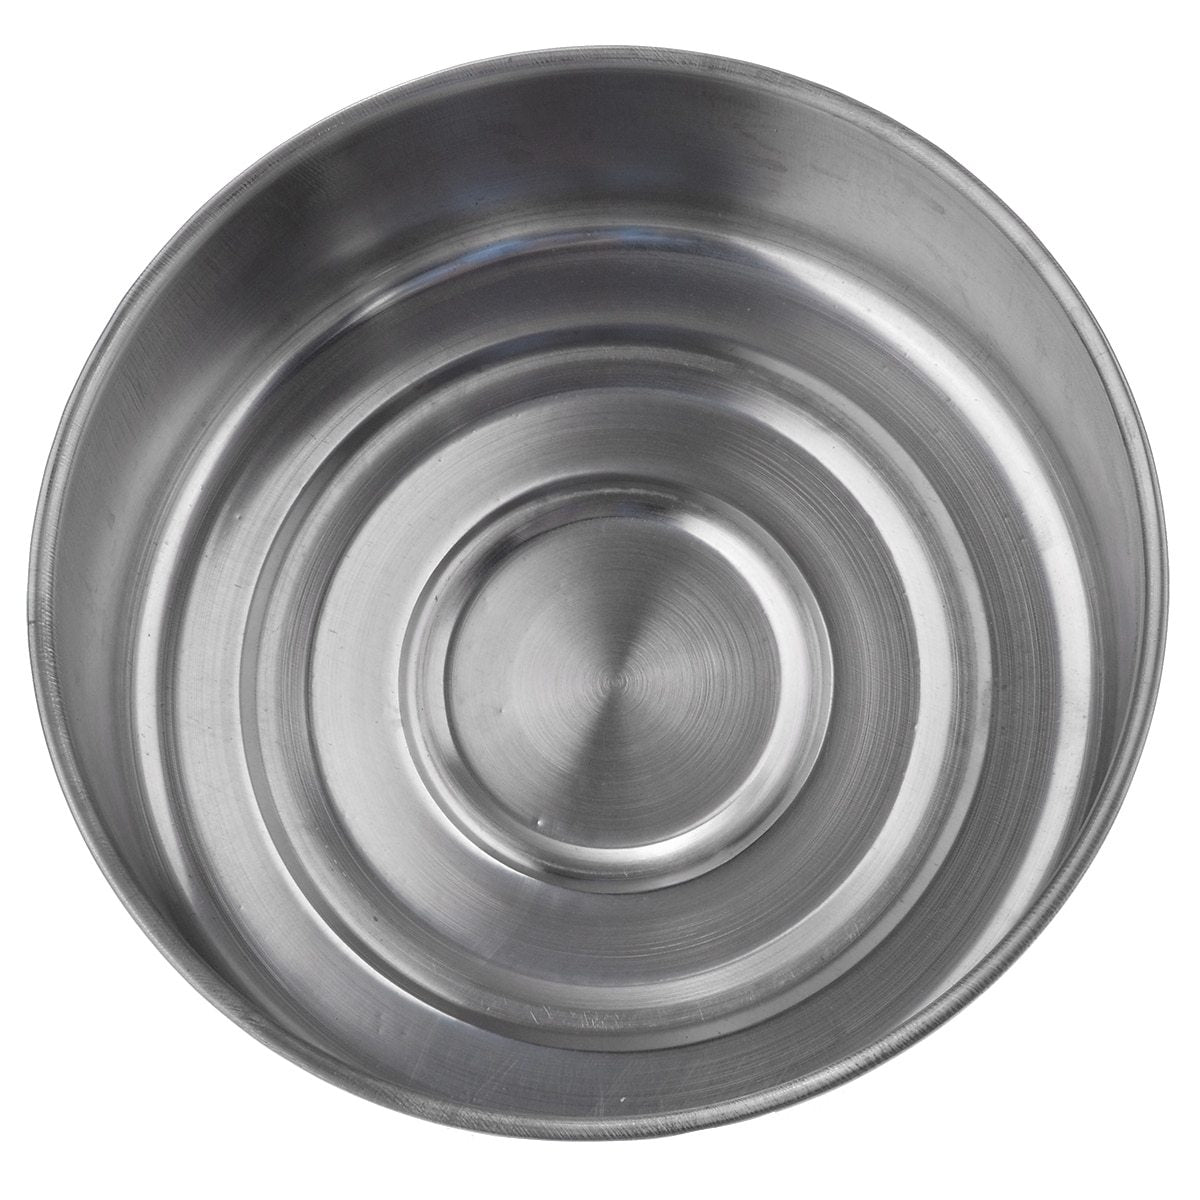 Quality 5pcs/set Stainless Steel Mixing Bowls 10/12/14/16/18cm Lunch Boxes + Clear Plastic Sealing Lids Portable Kitchen Utensil